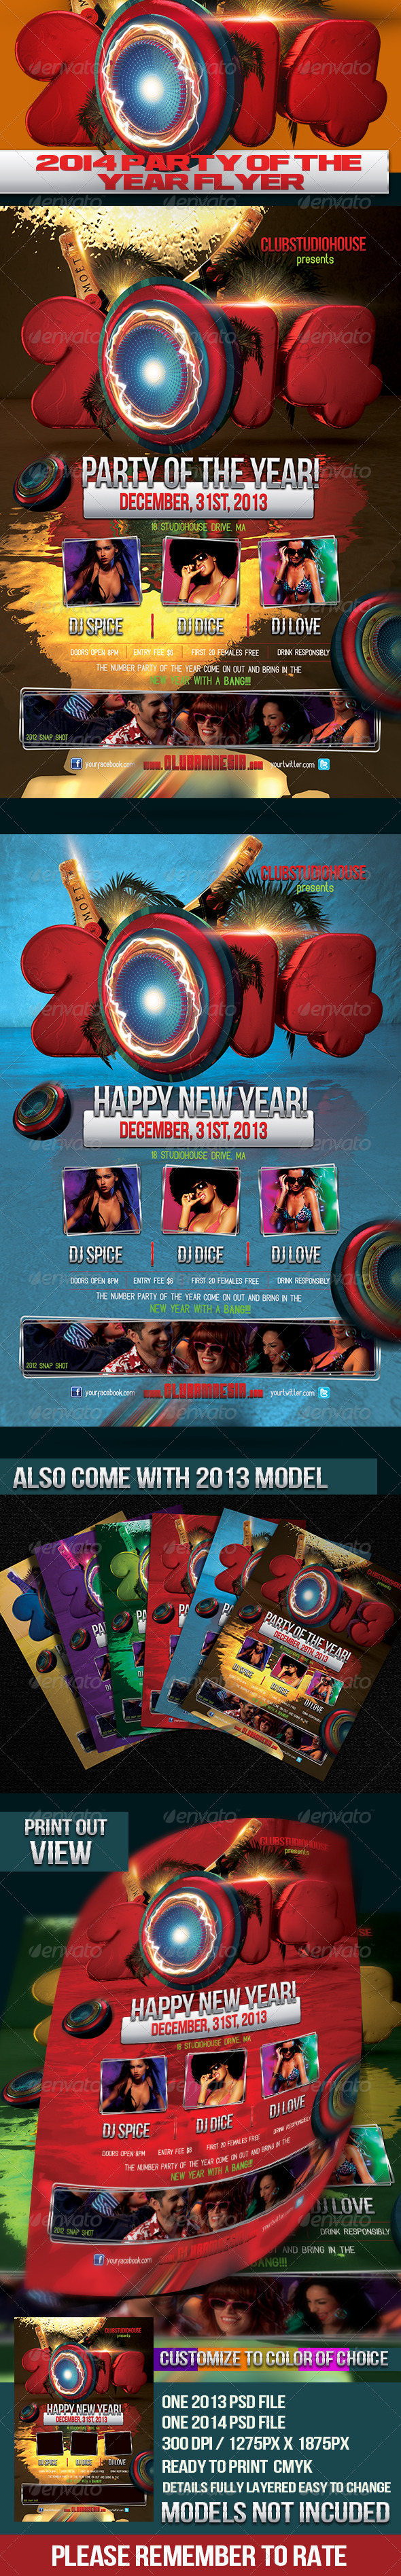 2014 2013 Party Of The Year Flyer Design